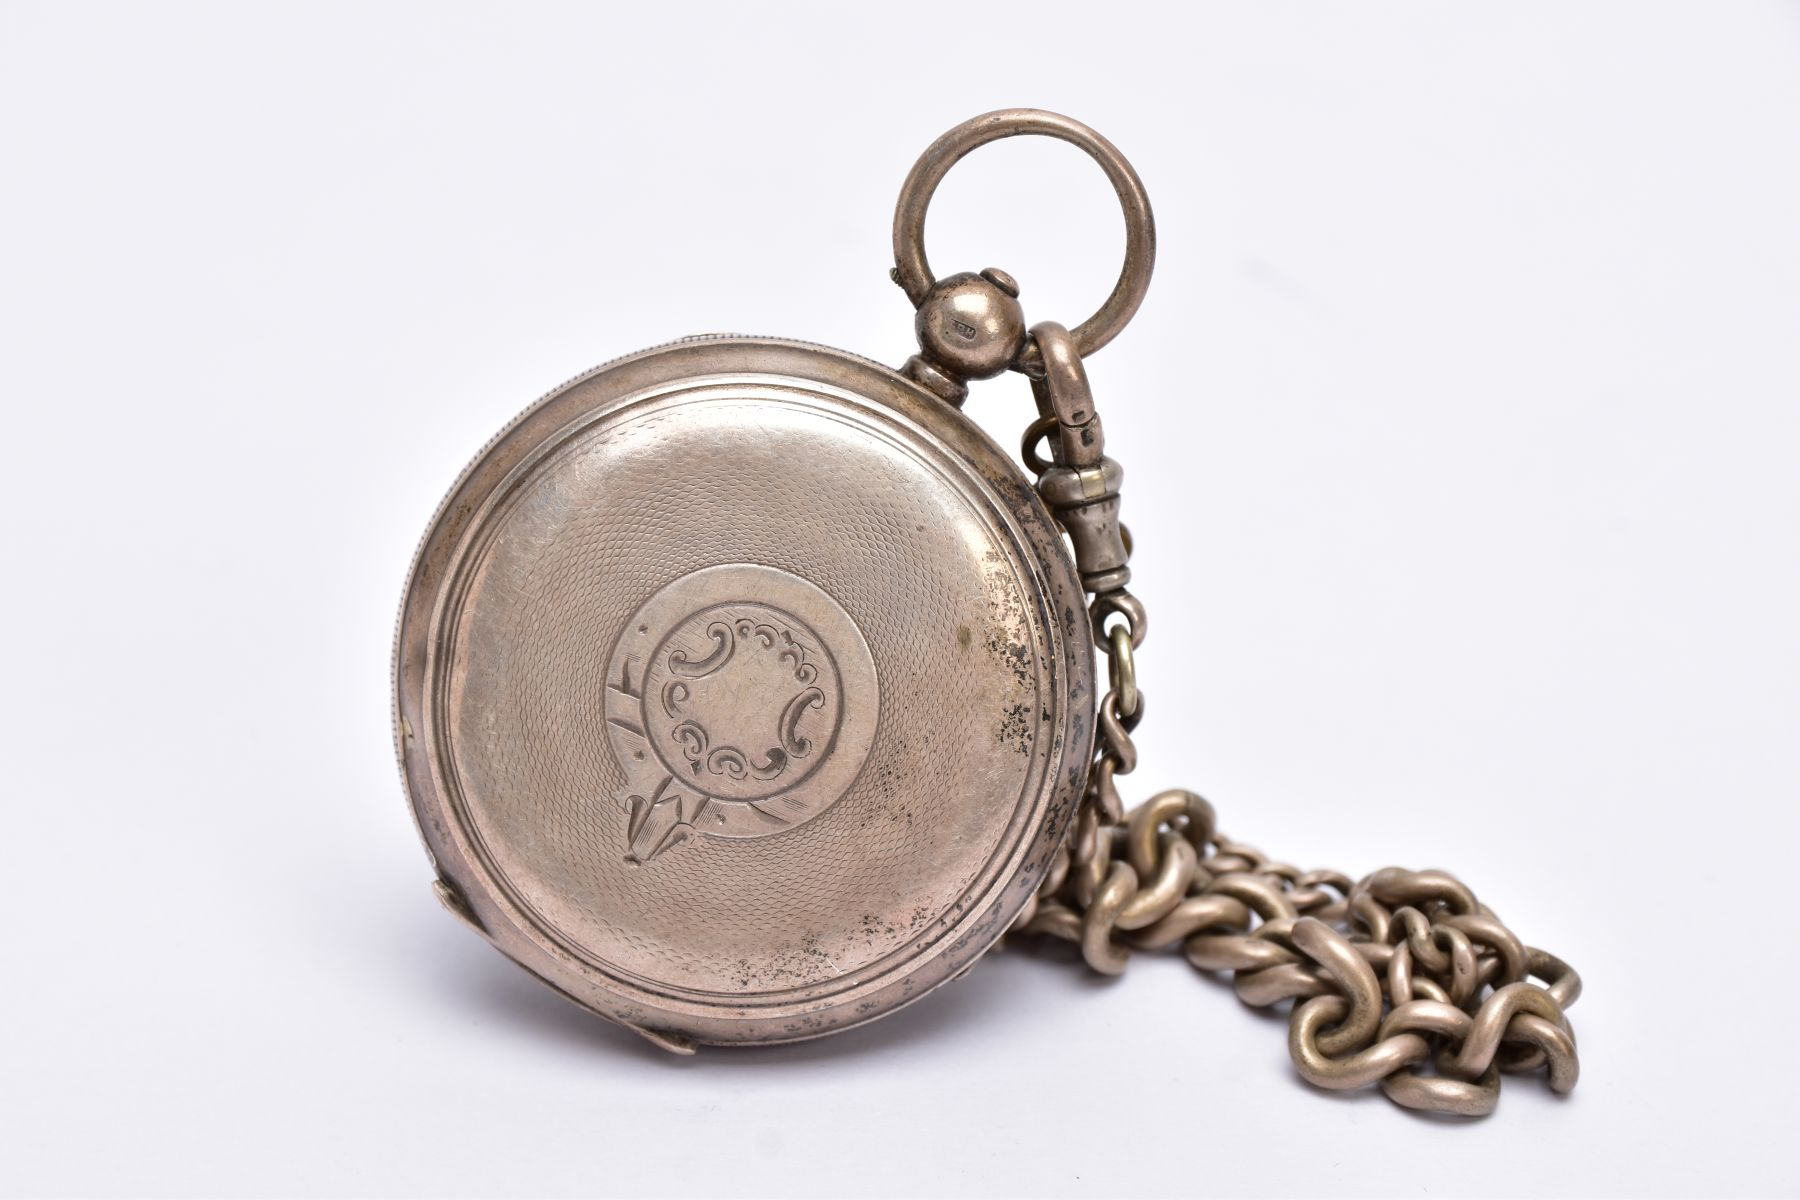 A SILVER OPEN FACED POCKET WITH ALBERT CHAIN, white dial signed 'The Empire', Roman numerals, - Image 2 of 5